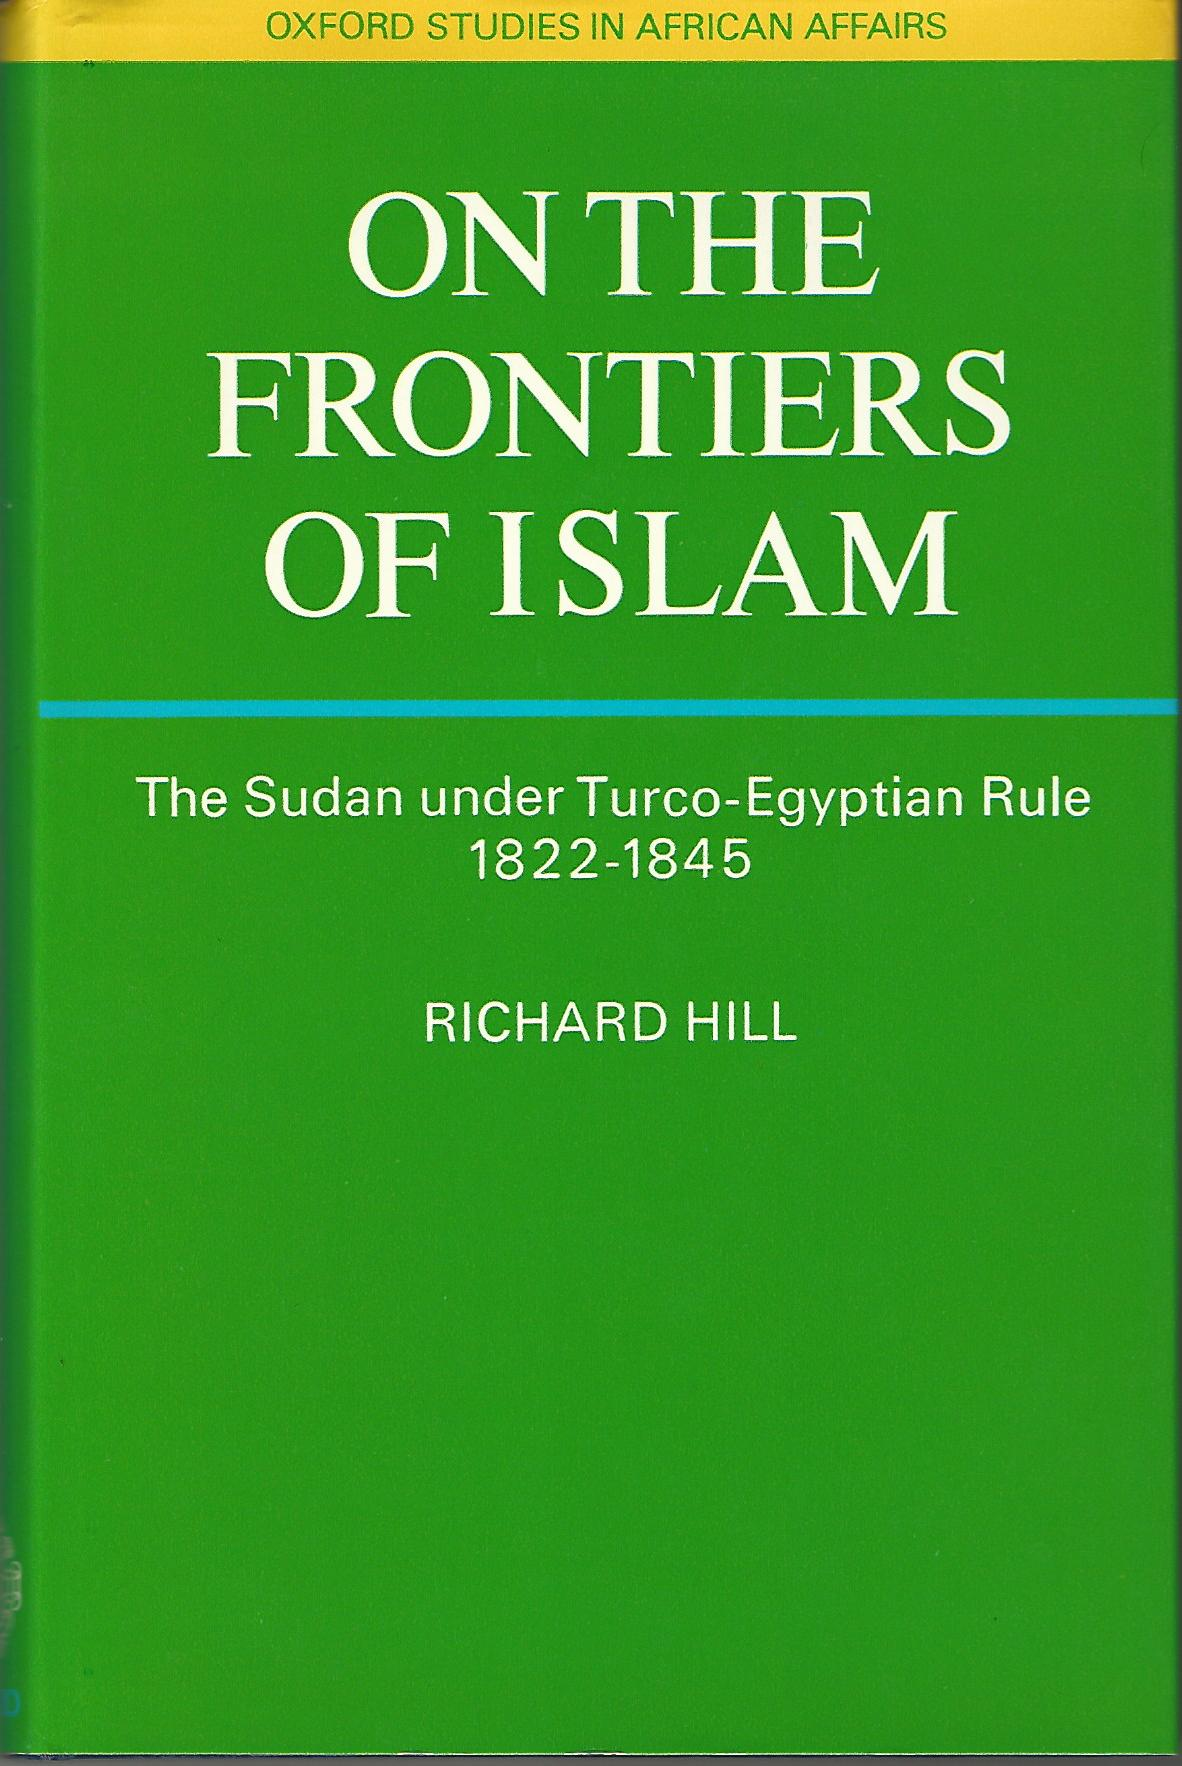 Image for On the Frontiers of Islam: Two Manuscripts Concerning the Sudan Under Turco-Egyptian Rule, 1822-45 (Study in African Affairs)